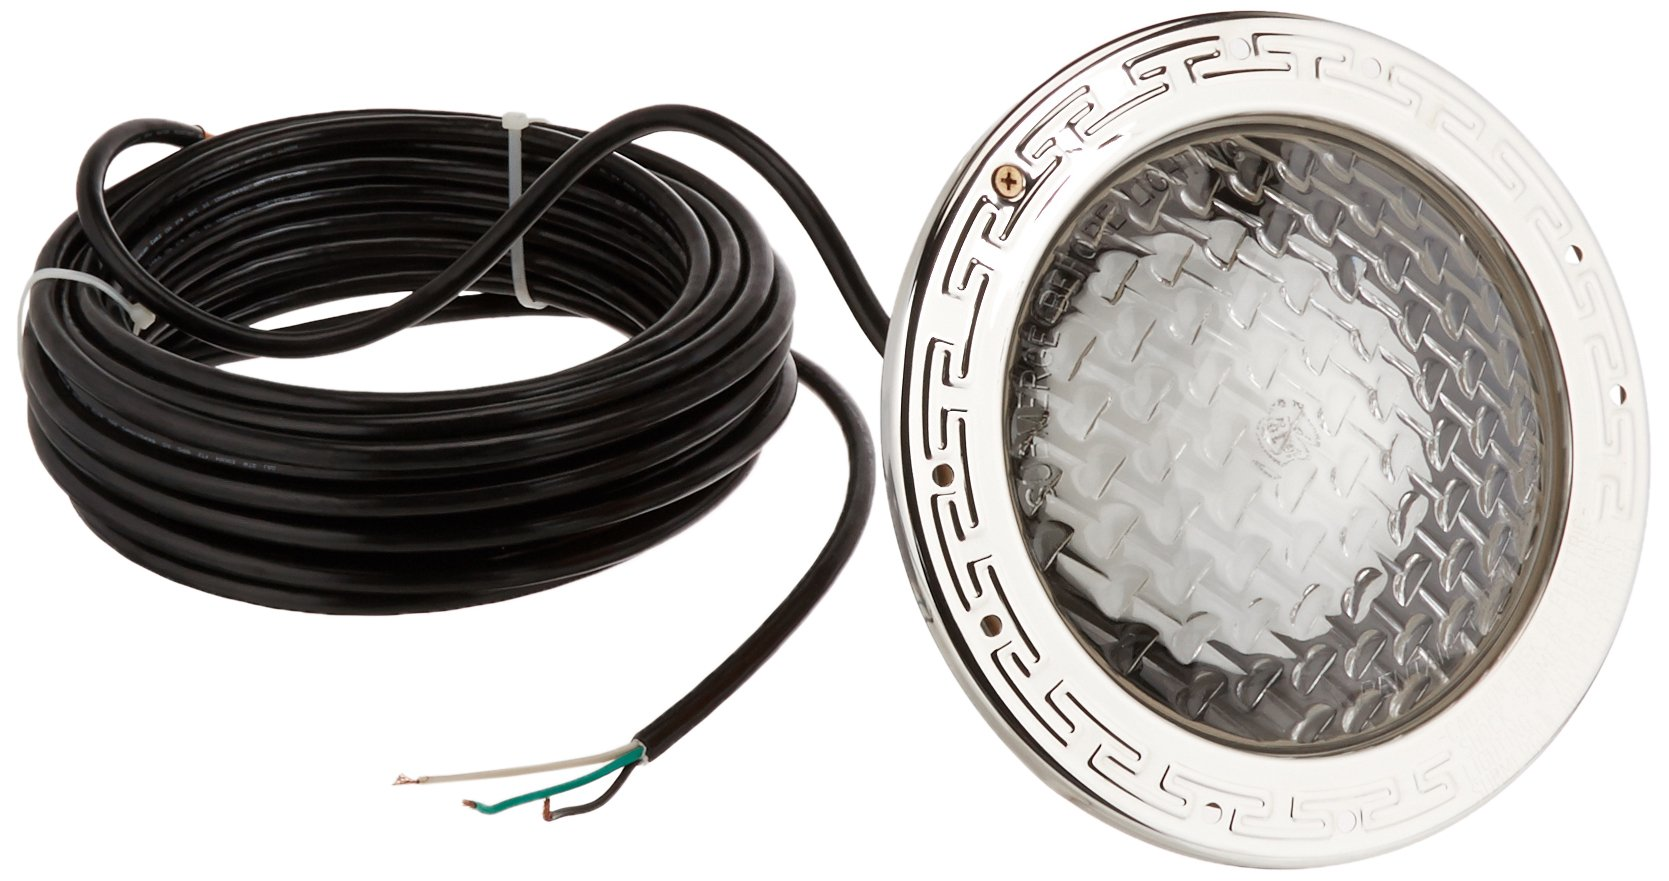 Pentair 78428100 Amerlite Underwater Incandescent Pool Light with Stainless Steel Face Ring, 120 Volt, 50 Foot Cord, 300 Watt by Pentair